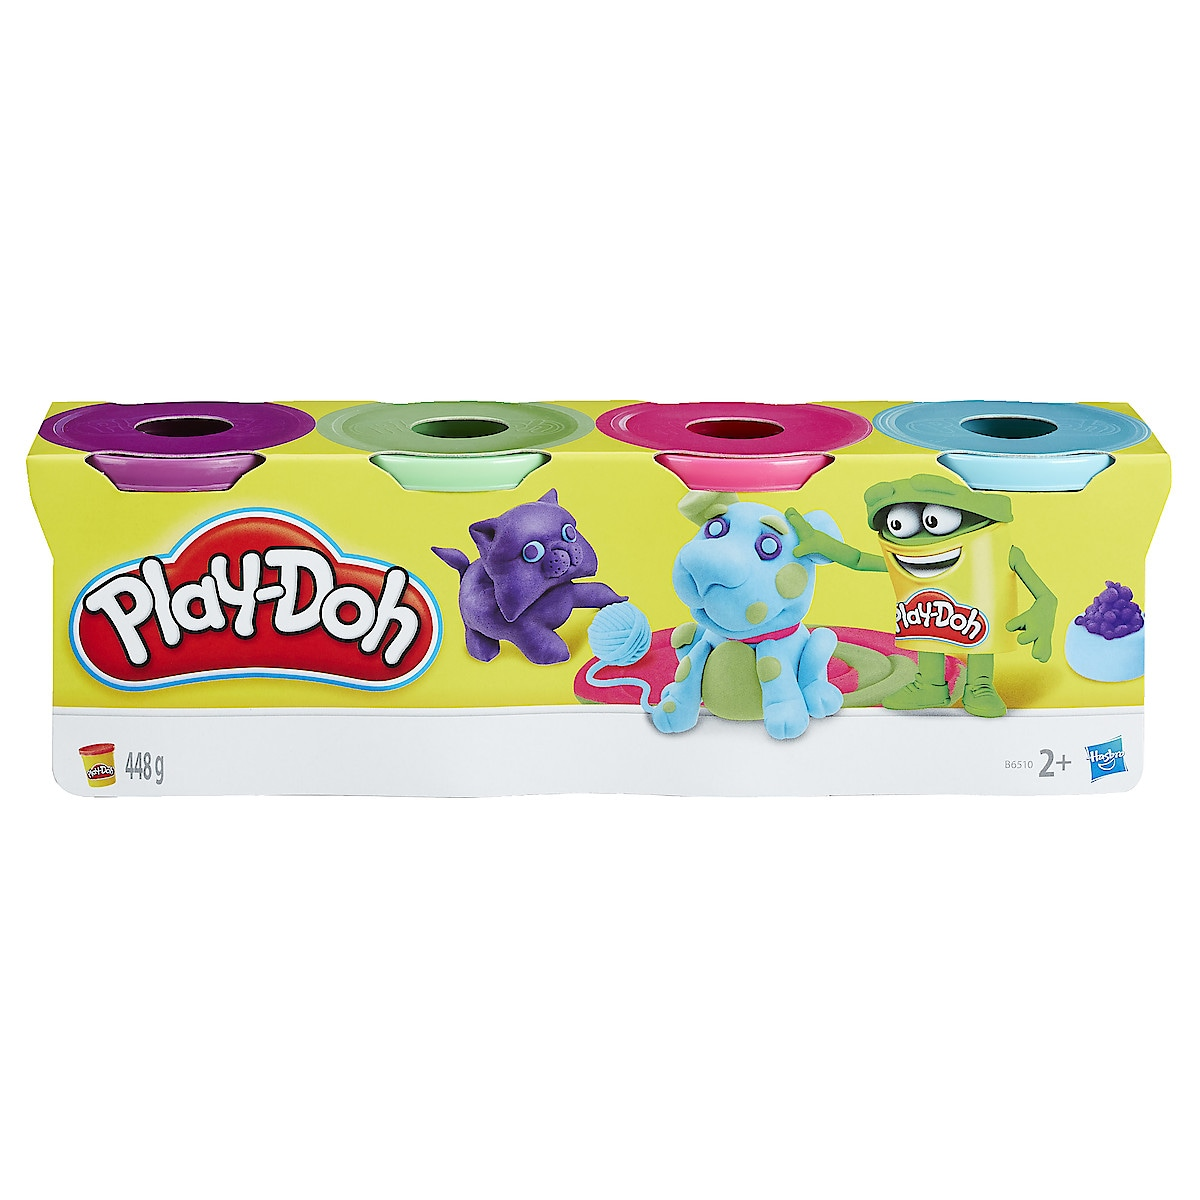 Play-Doh Modelling Compound, 4-pack